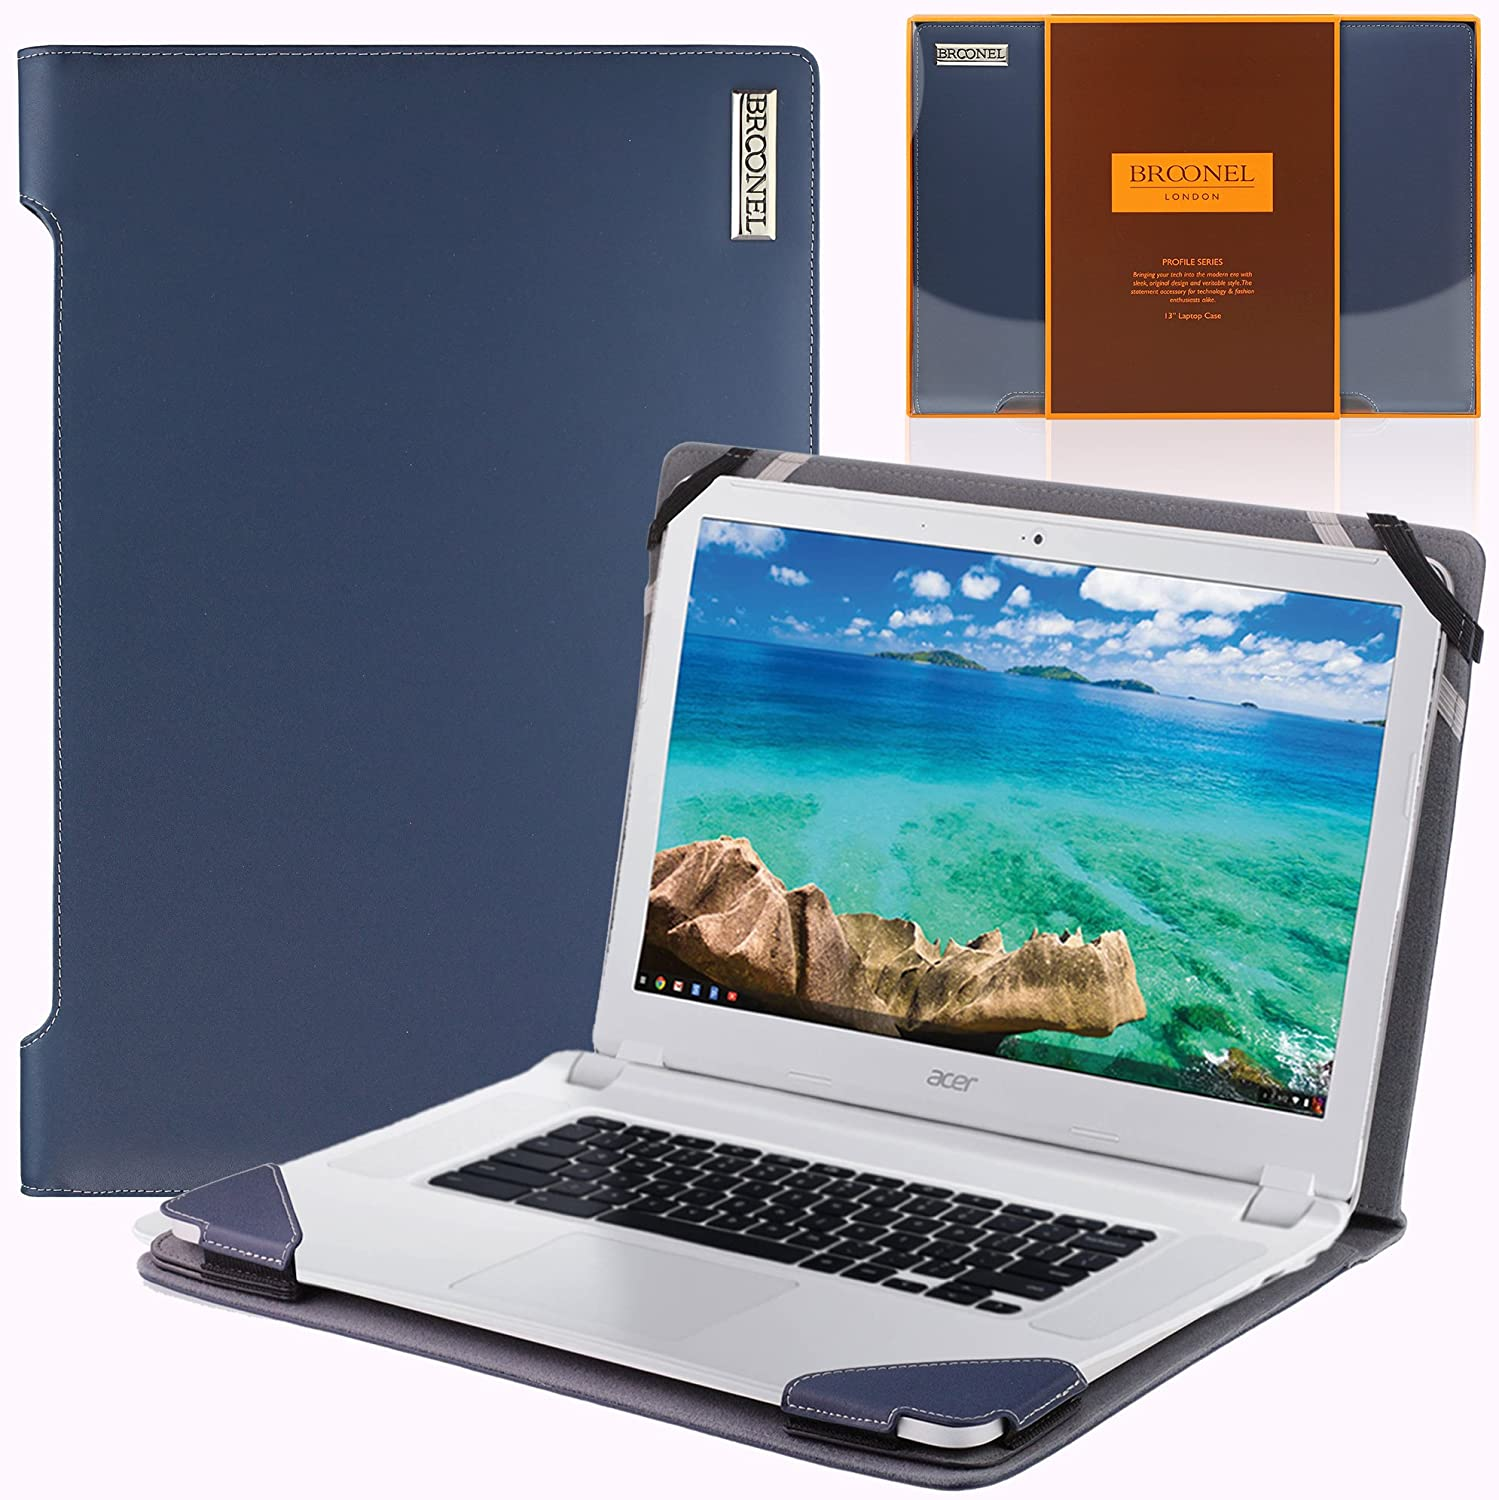 Broonel London - Profile Series - Blue Vegan Leather Luxury Laptop Case Cover Sleeve Compatible with The Acer Chromebook CB5-571 15.6""